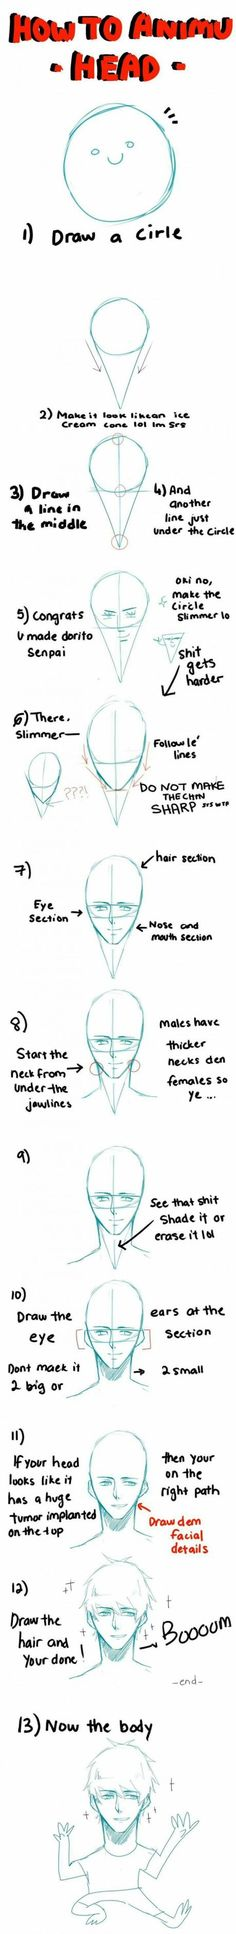 how to draw anime  - Imgur